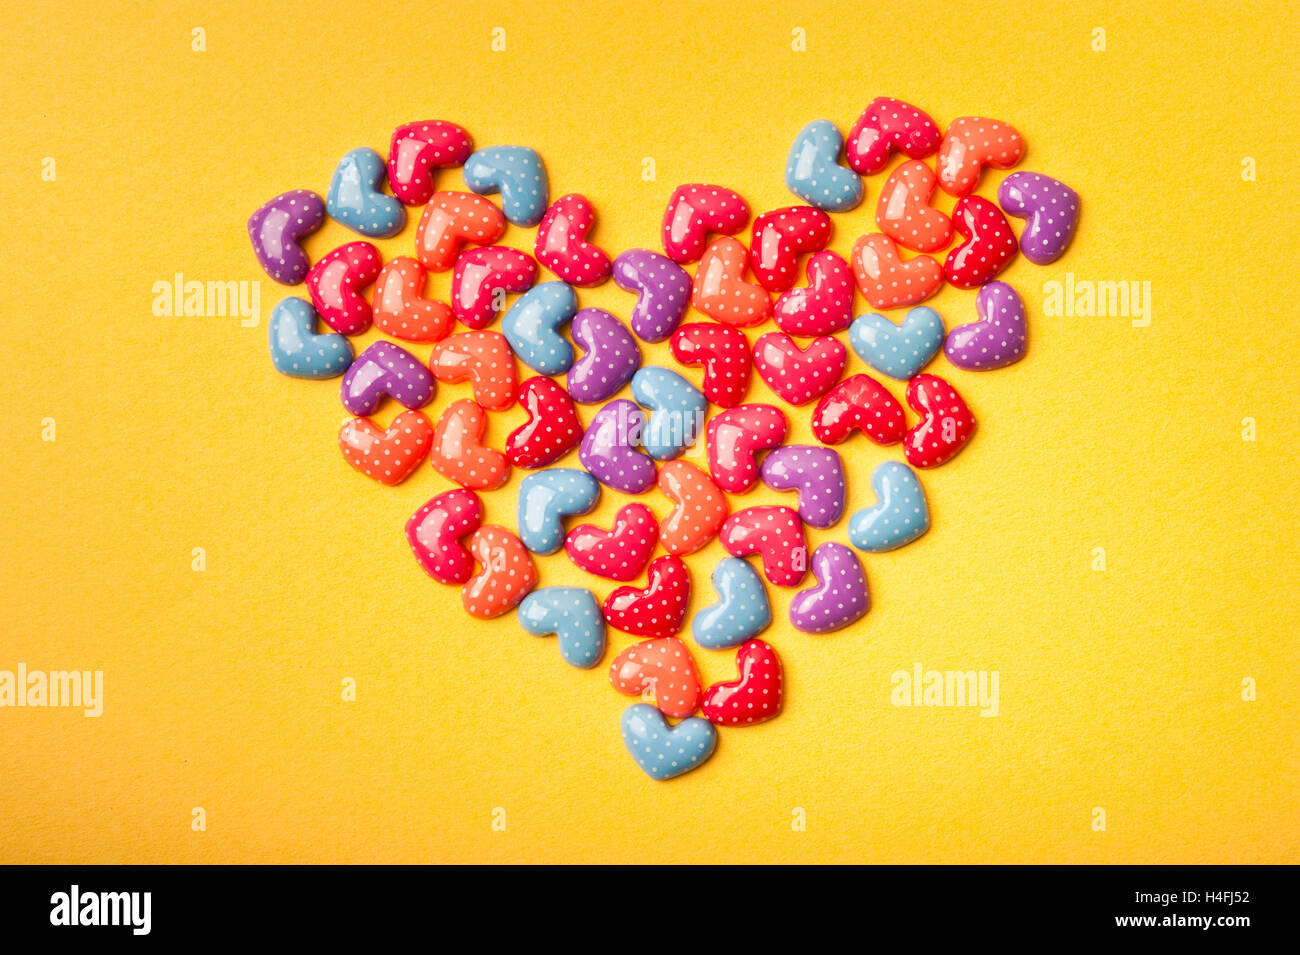 Forme de coeur de confettis, love concept Photo Stock